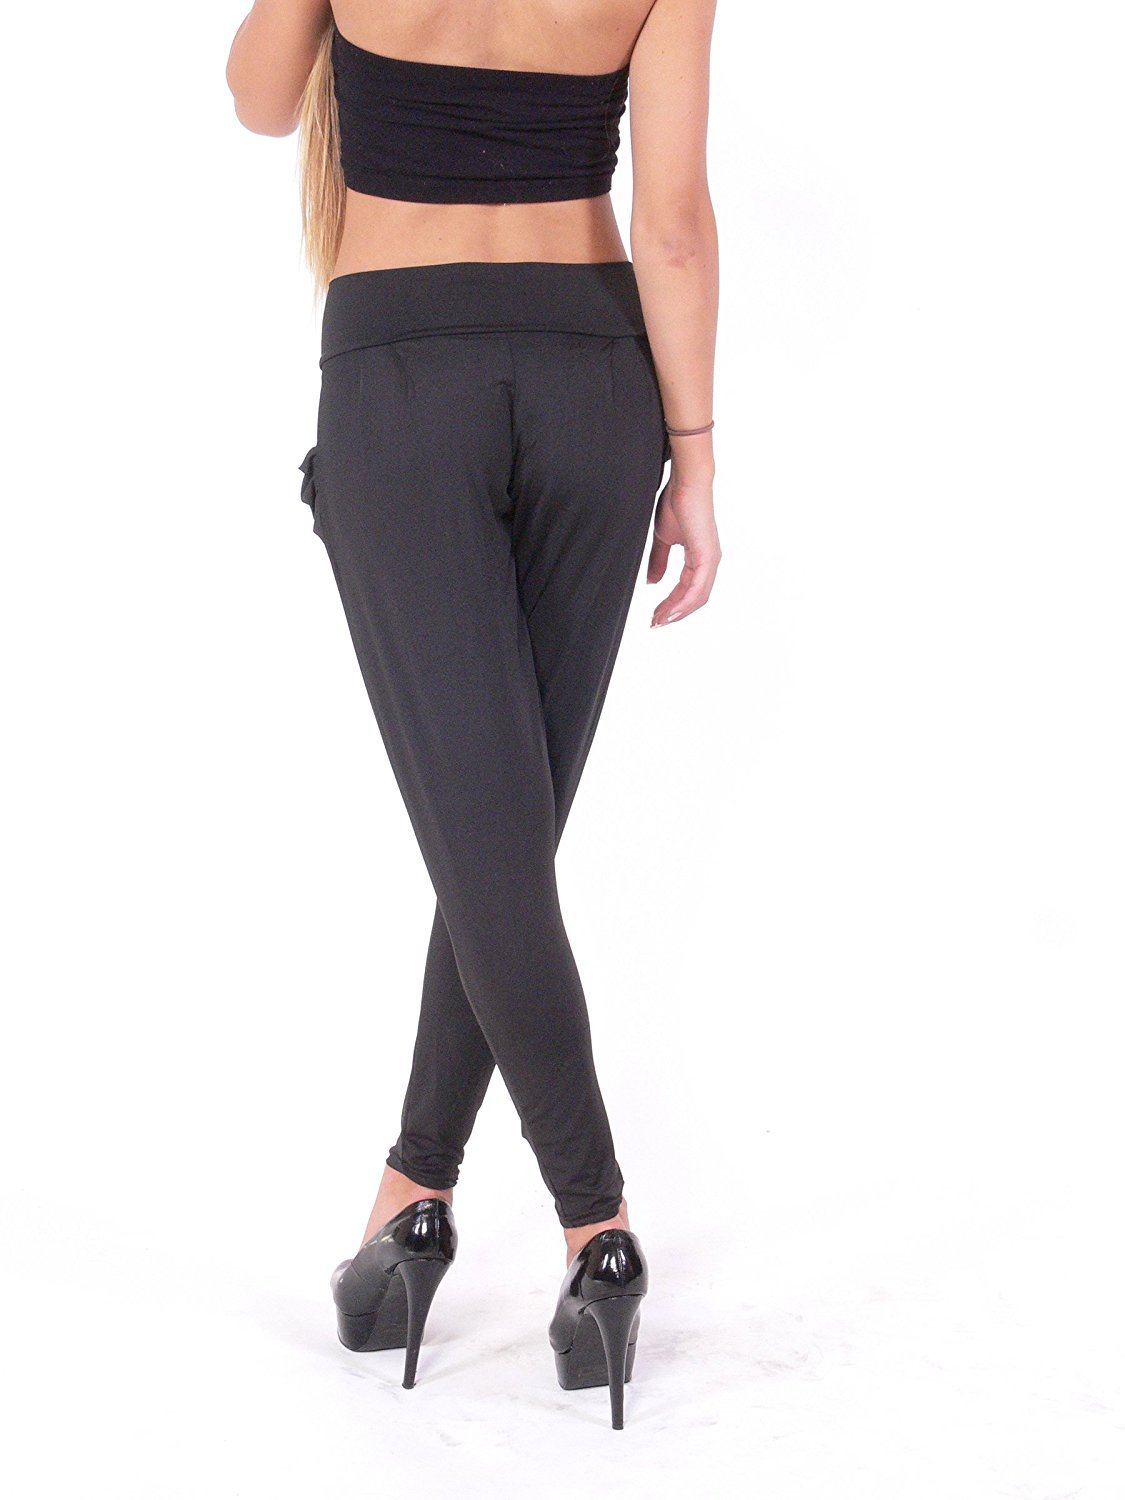 Aladdin Aladina Pants with Pockets Jersey Full Length Legging (M/L, Black)